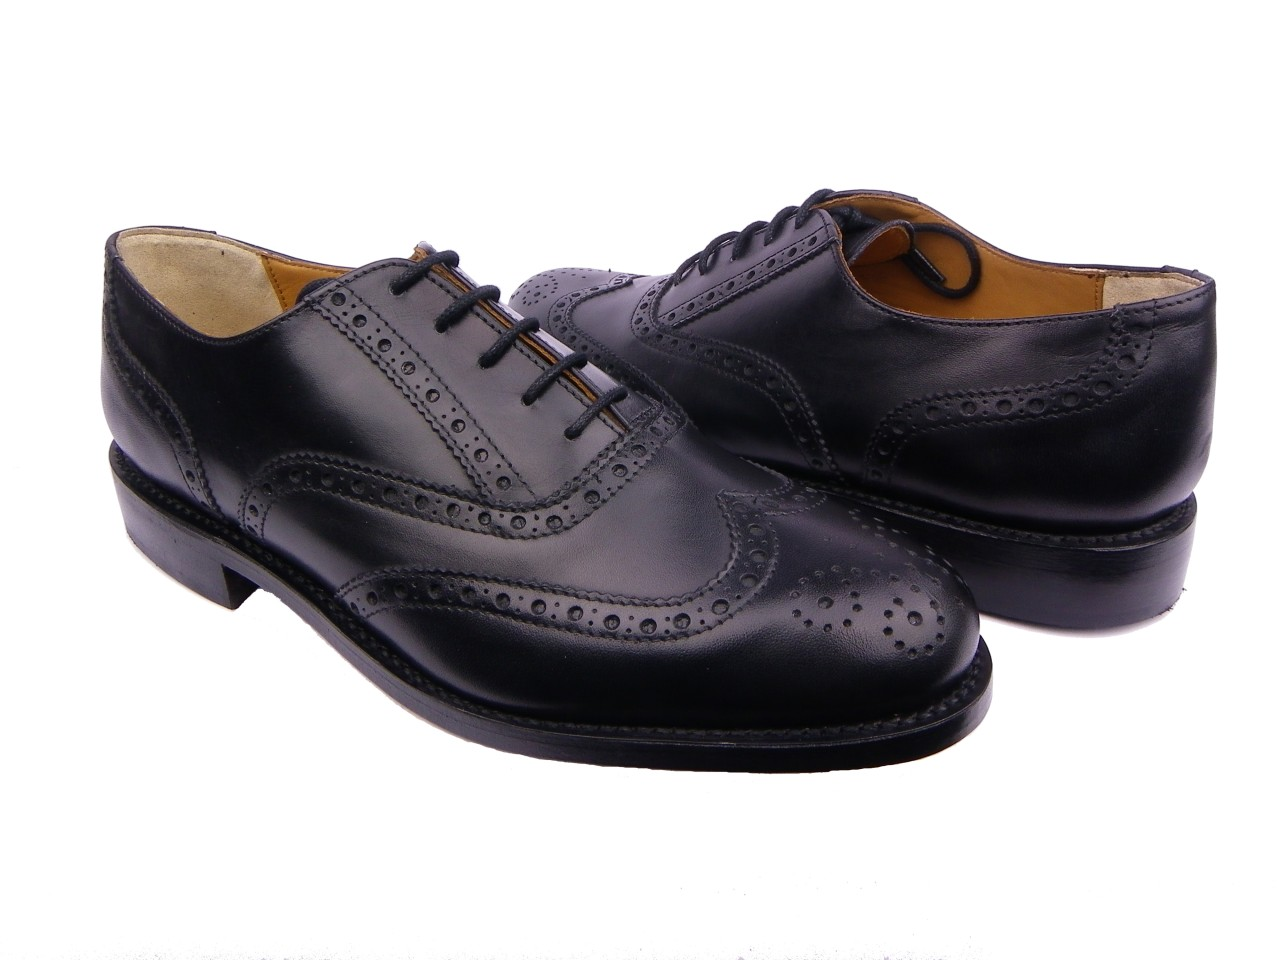 new mens formal longwing wingtip dress oxford shoes brogue